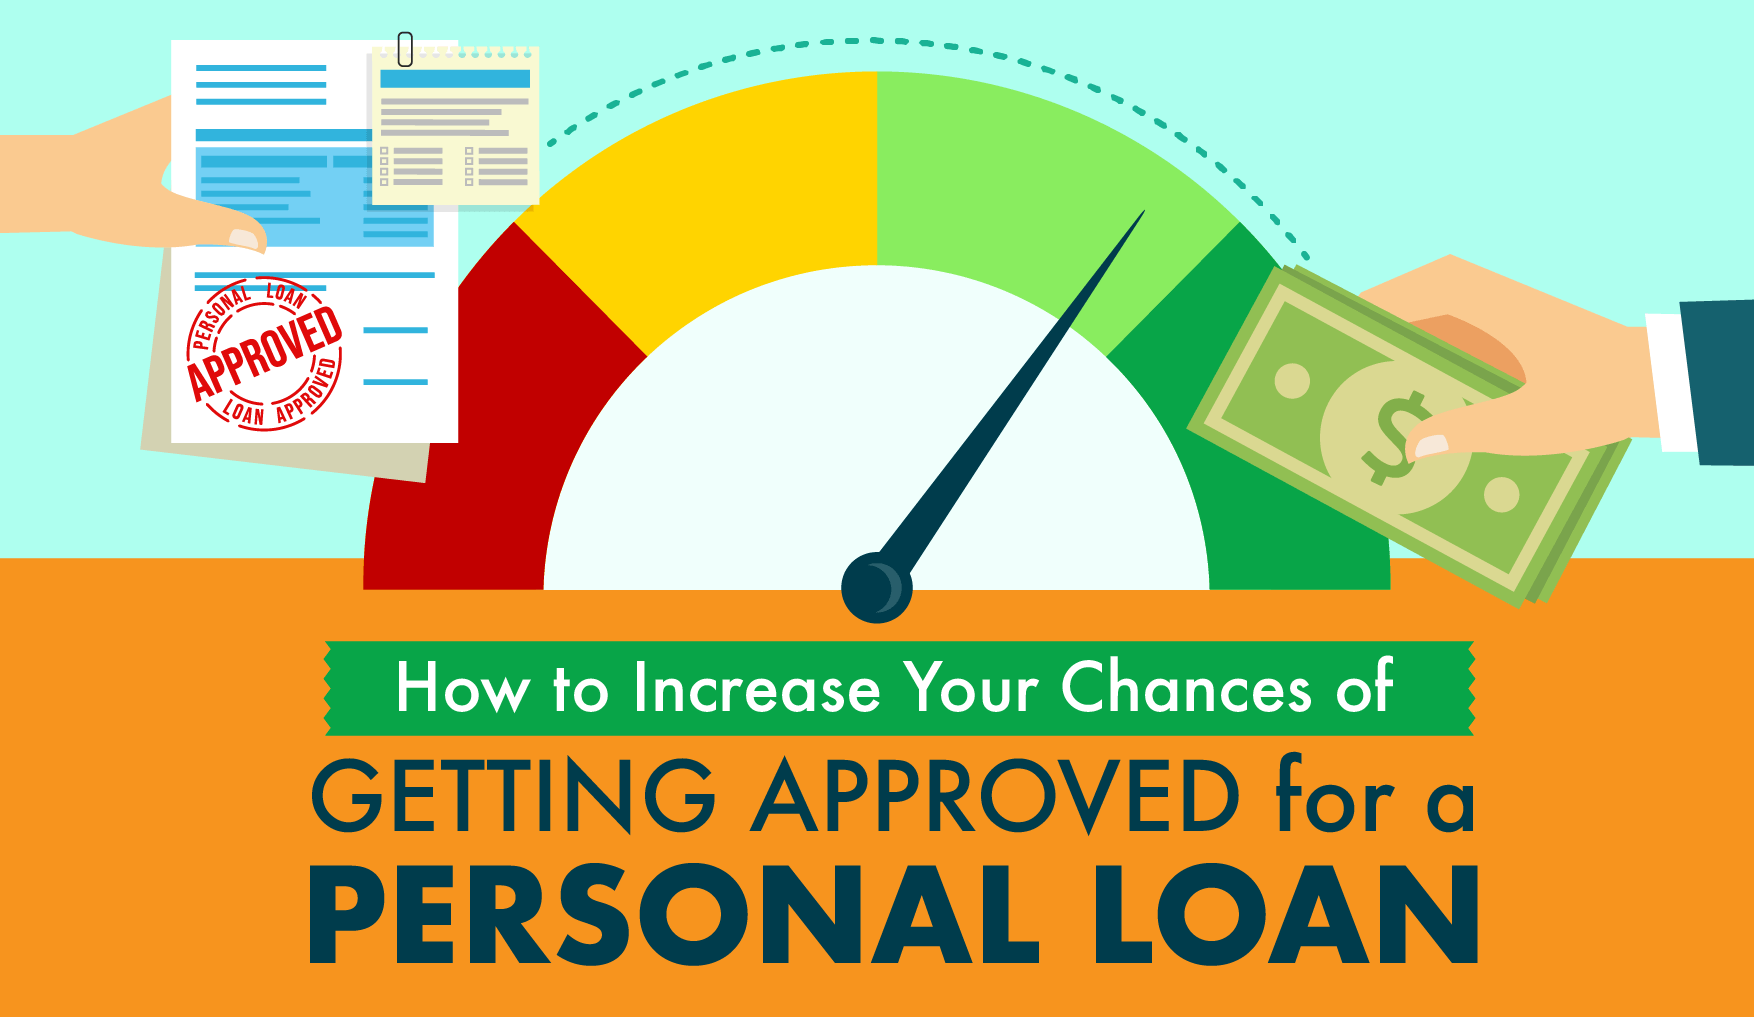 How To Increase Your Chances Of Getting Approved For A Personal Loan Personal Loans Finance Guide Loan